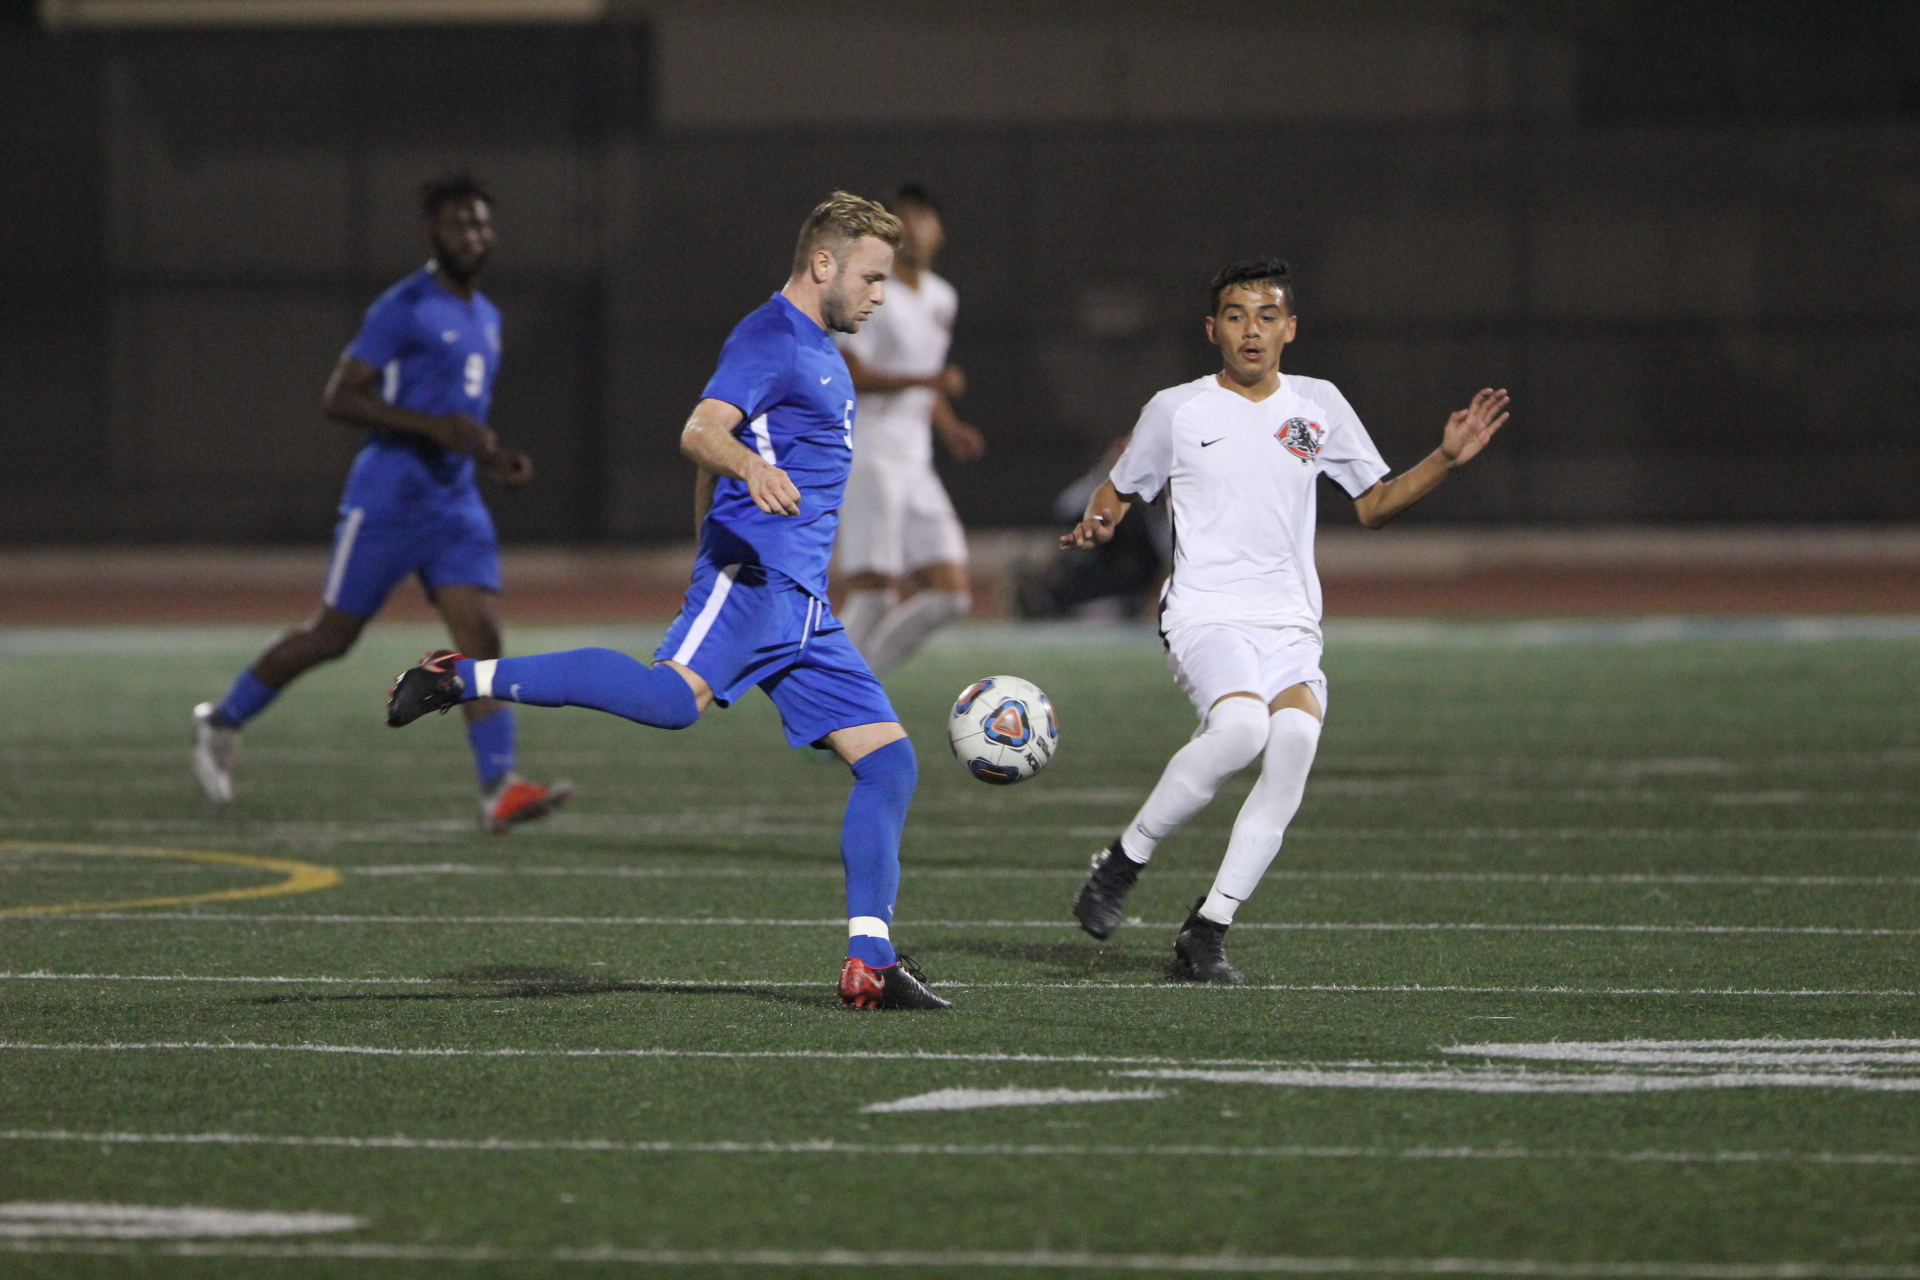 Santa Monica College Corsairs men's soccer team,mid elder, Alec Mclendon crosses ball against Chaffey college during playoff game at the Corsair eld inSanta Monica California on November 17, 2018. The Corsairs went on to win the game 2-0. (Dylan Cortez/ Corsair Staff)